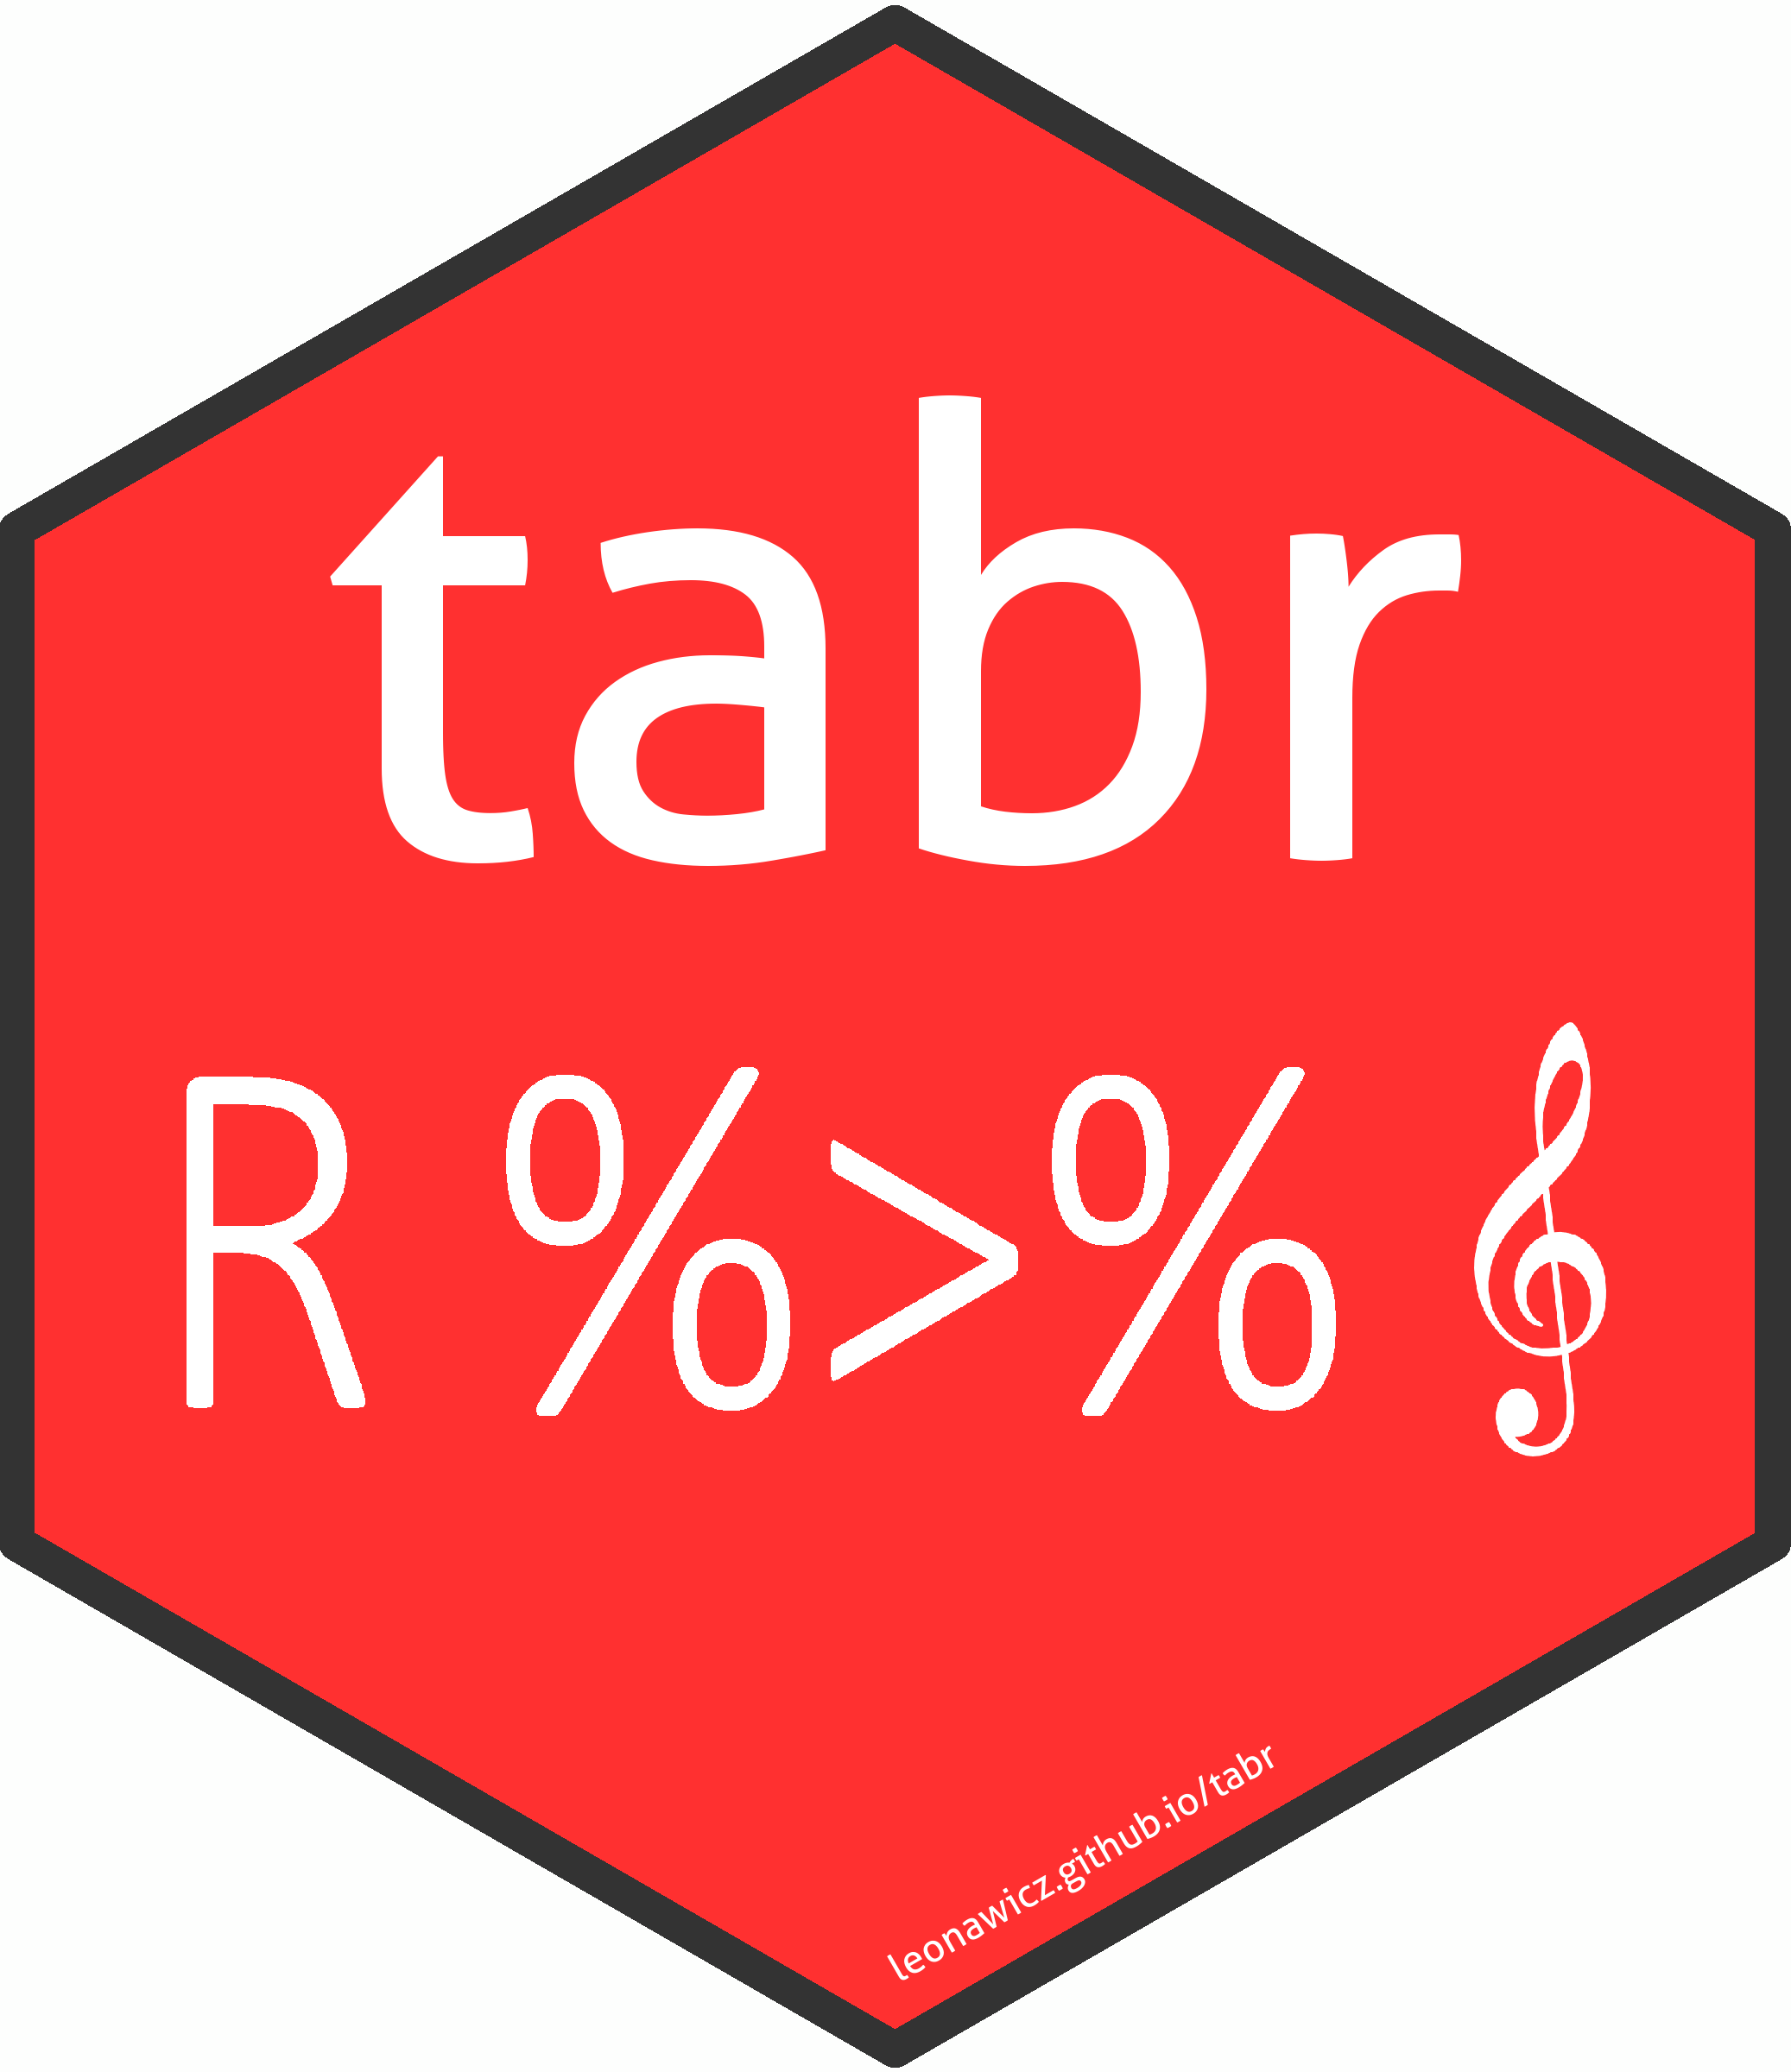 tabr package for guitar tablature now on CRAN